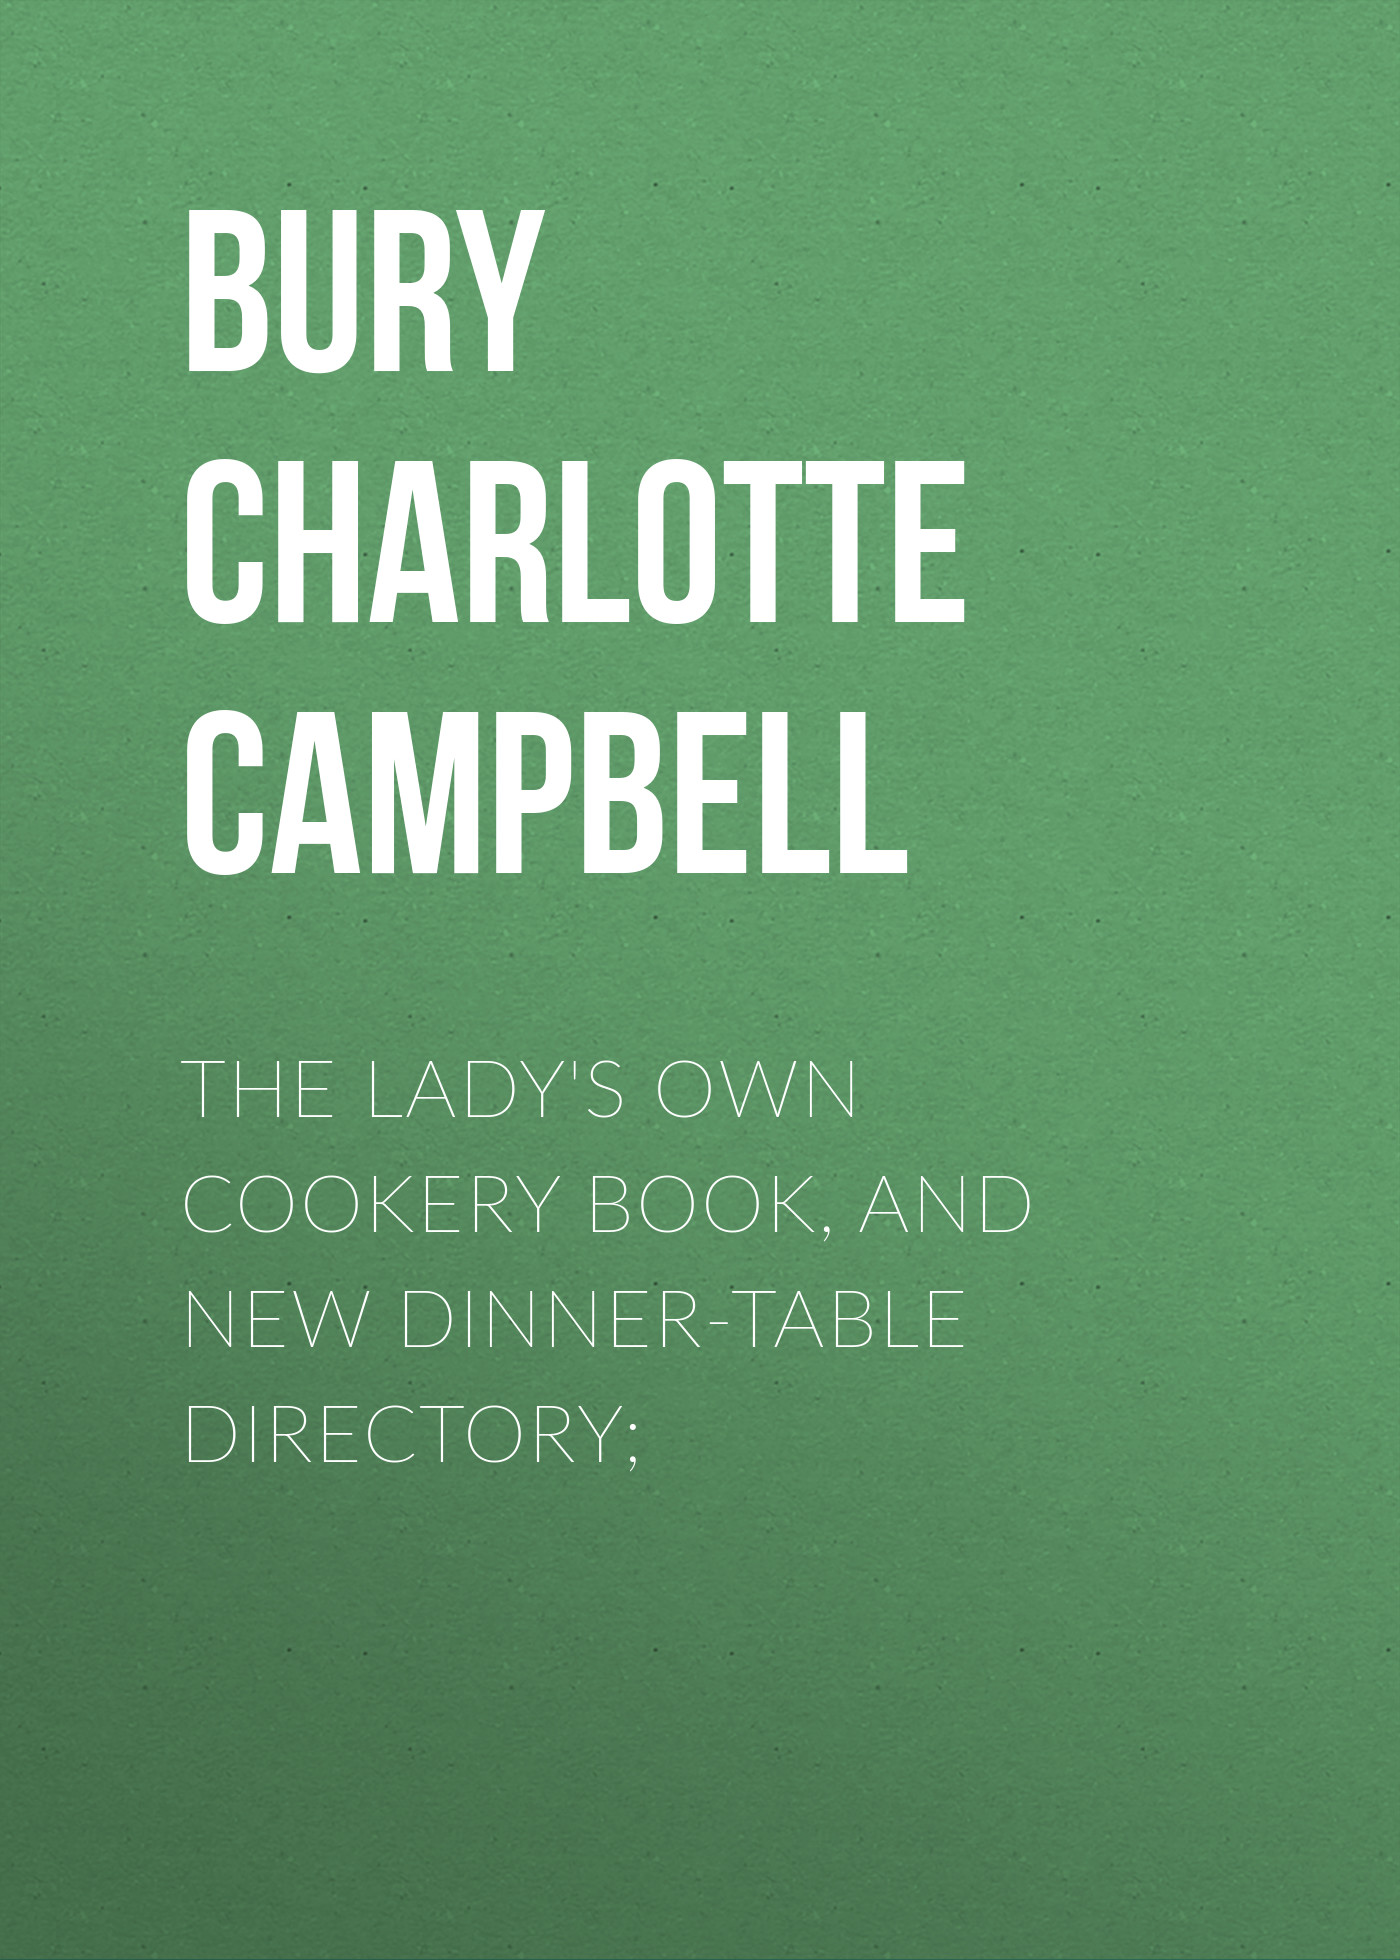 the ladys own cookery book and new dinner table directory